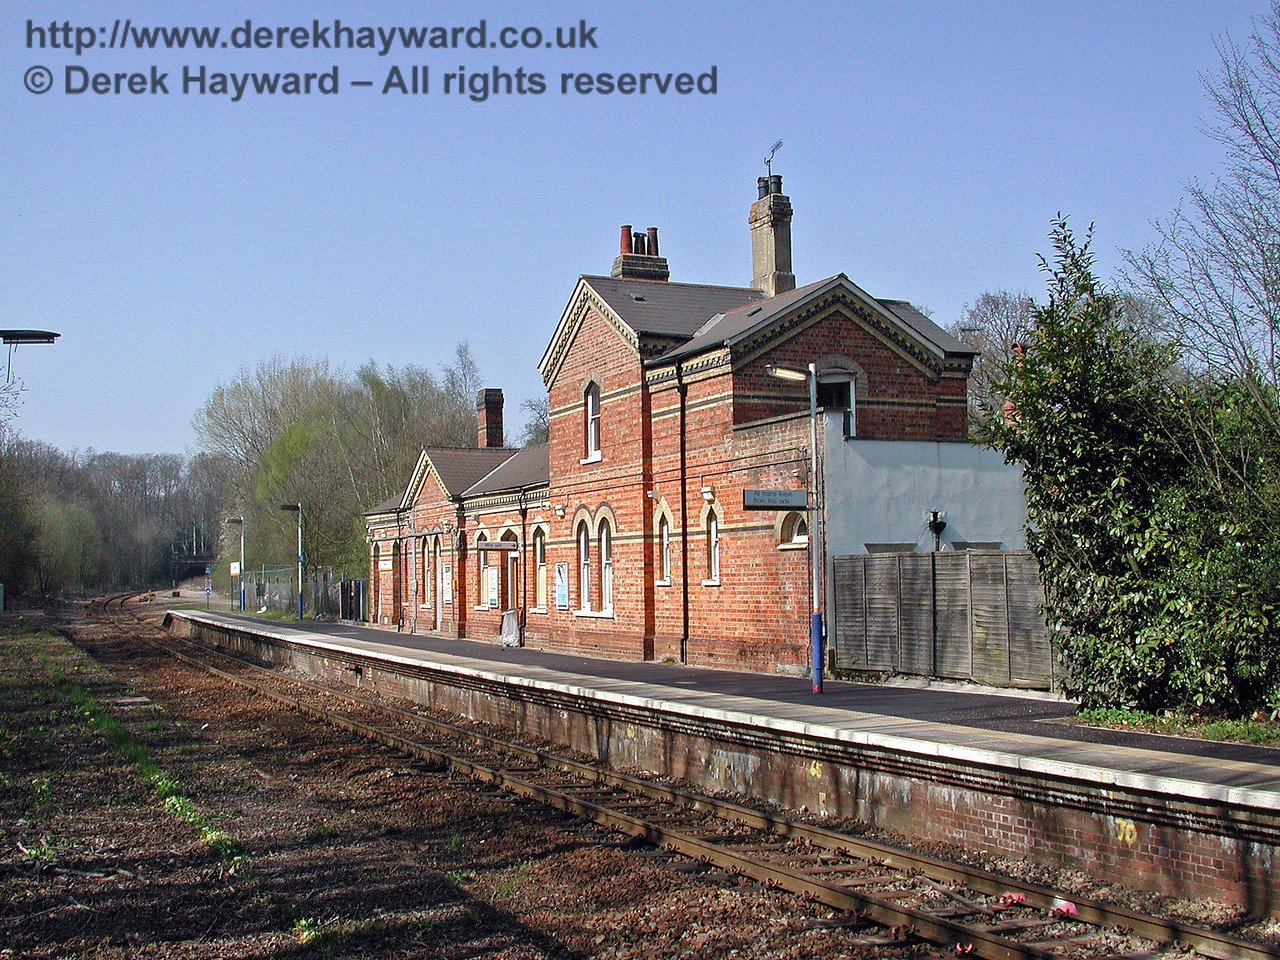 A closer view of the Cowden station building, looking north. 18.04.2003